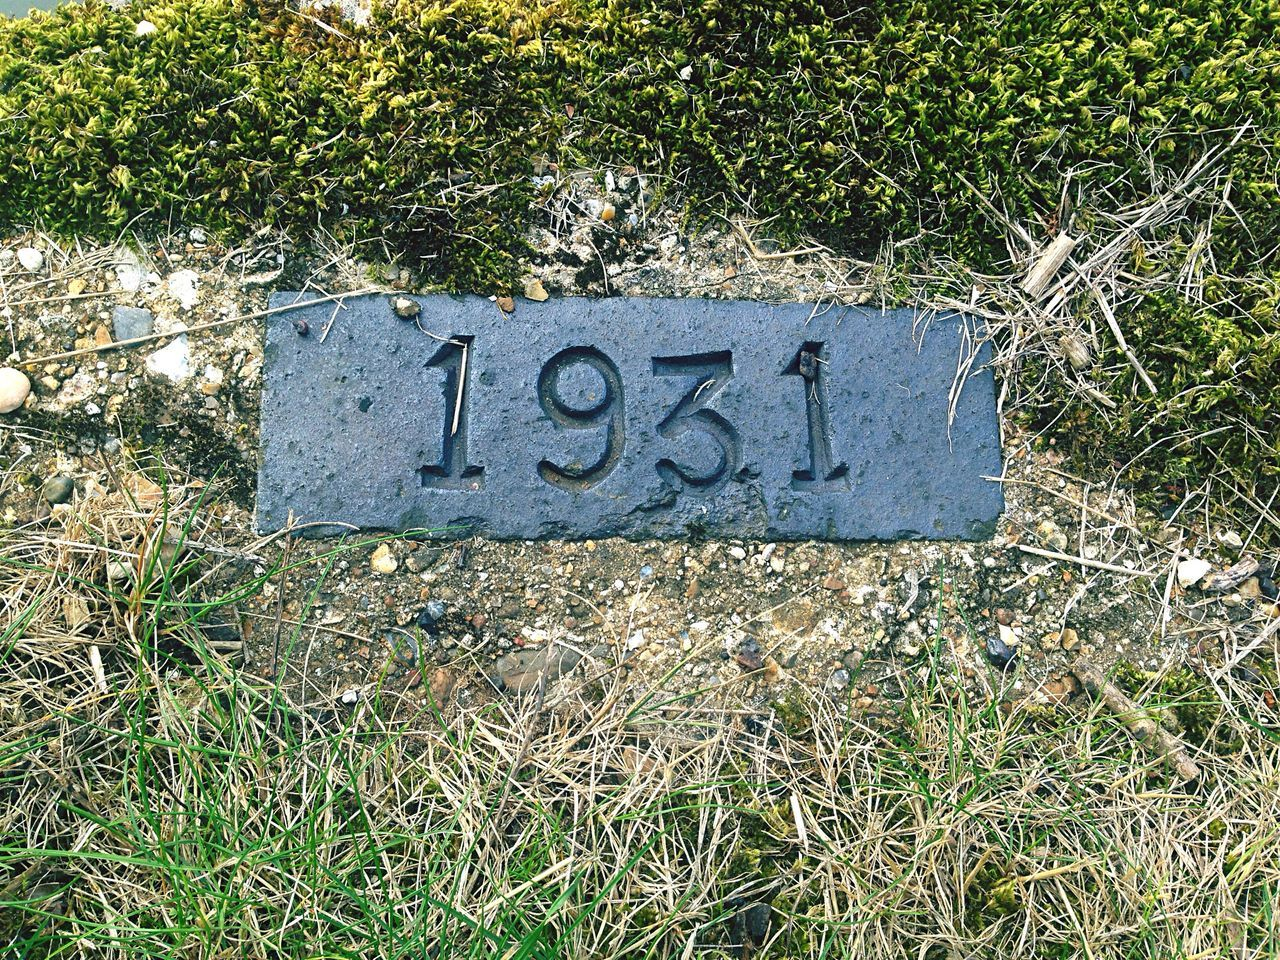 The year 1931 Communication Text Grass Western Script Information Sign 1931 Field Close-up Weathered Geometric Shape Green Color Day Outdoors Grassy Overhead View Symbol Signboard Dirty Grassland